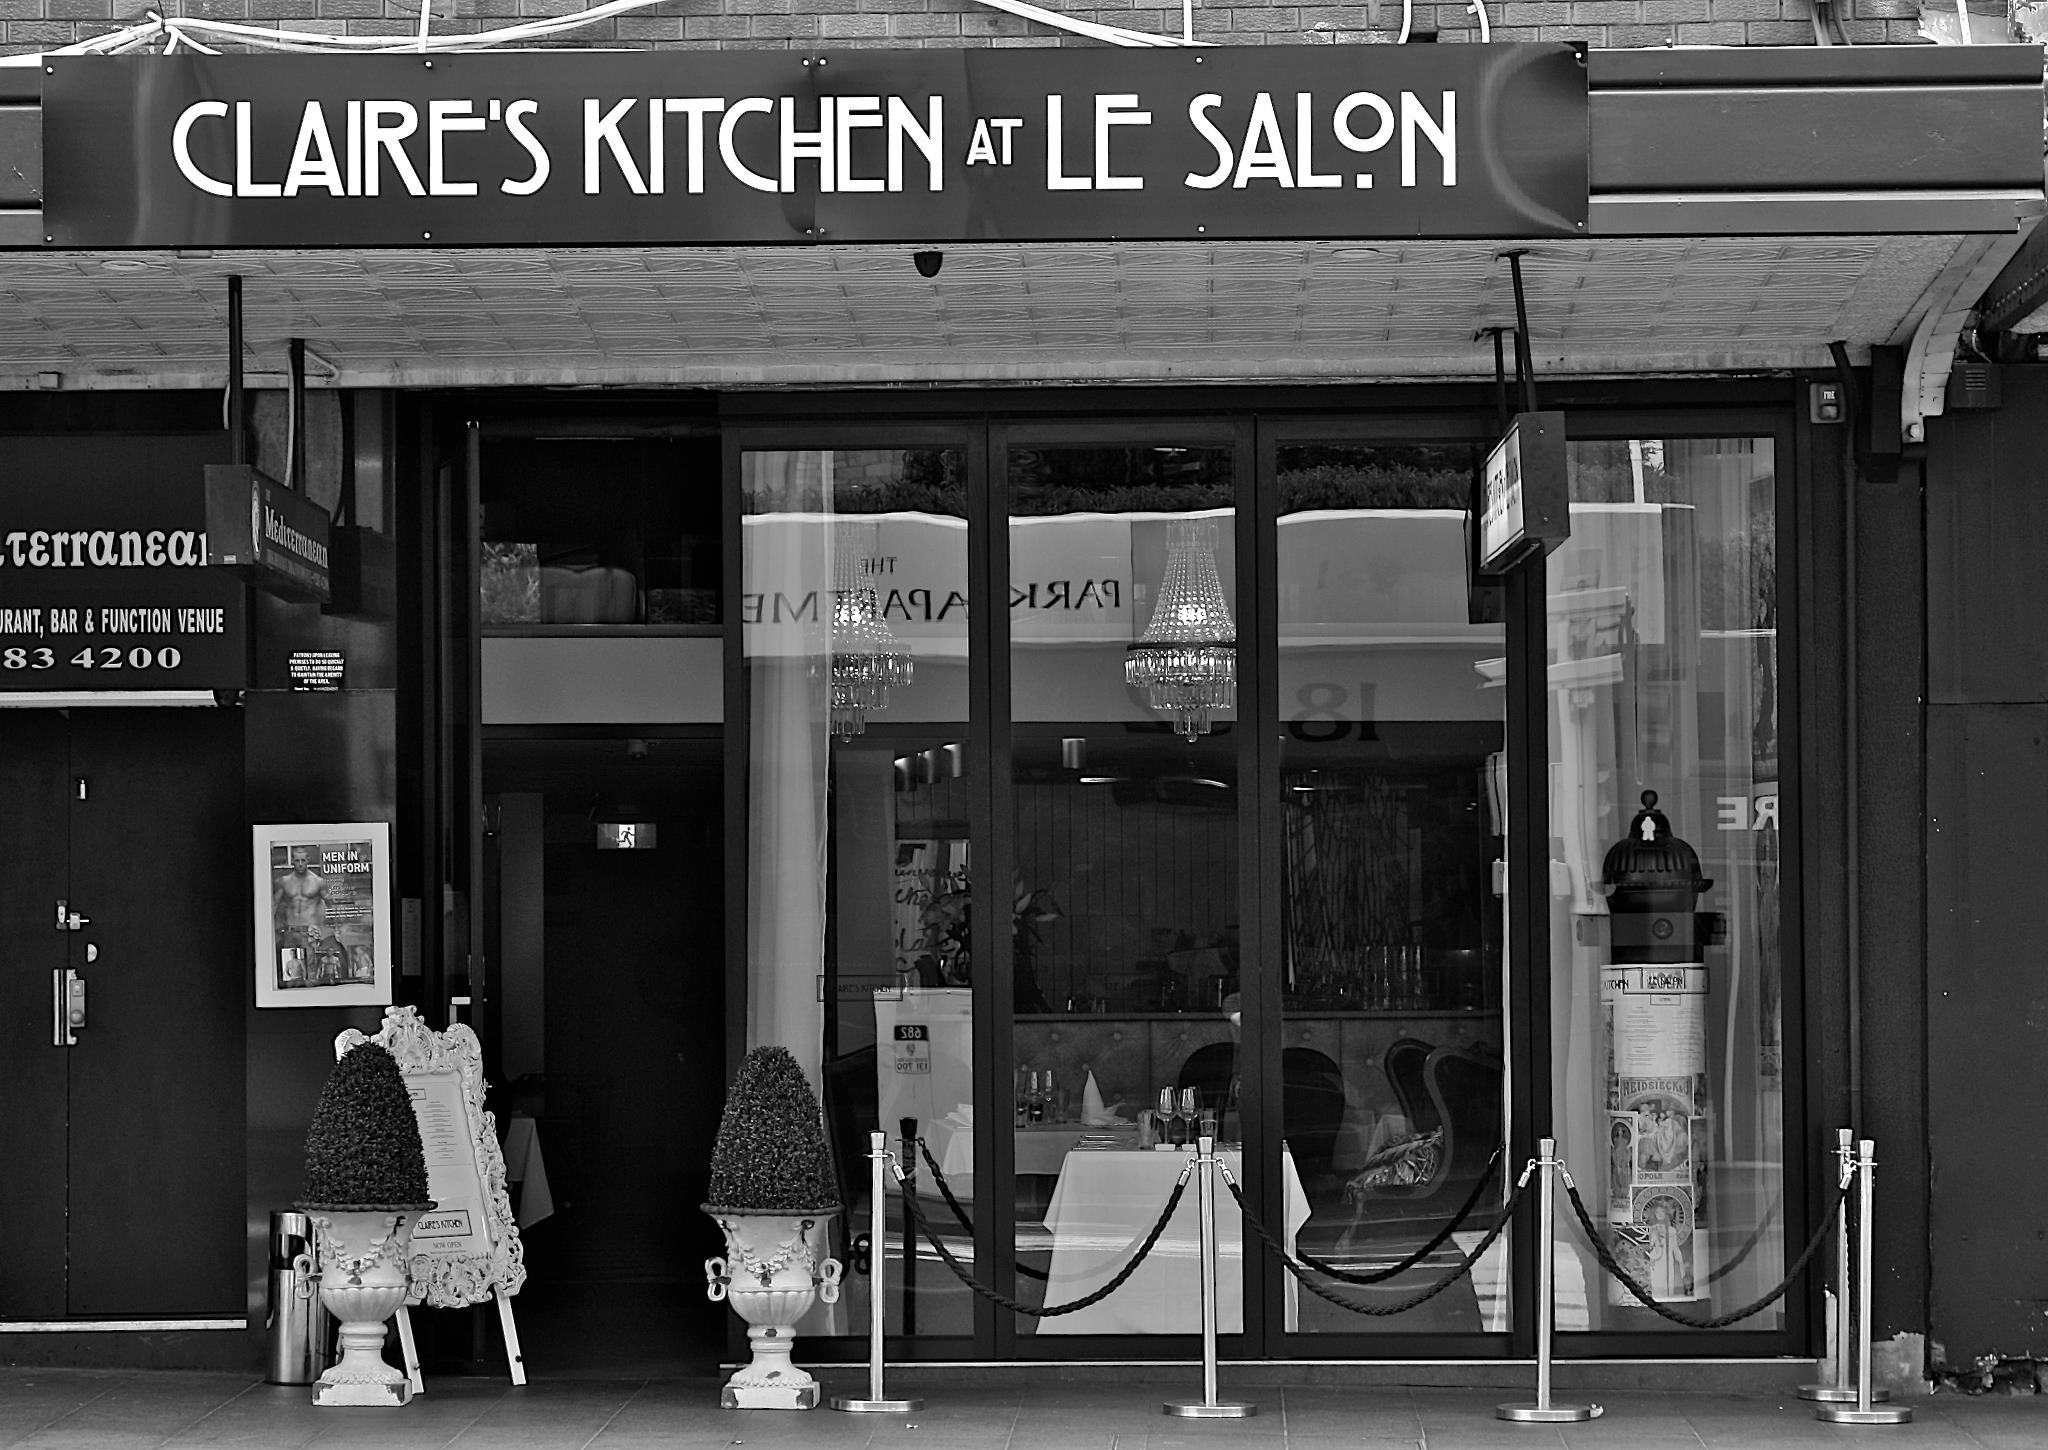 Claires kitchen at le salon french restaurant for Le salon in french